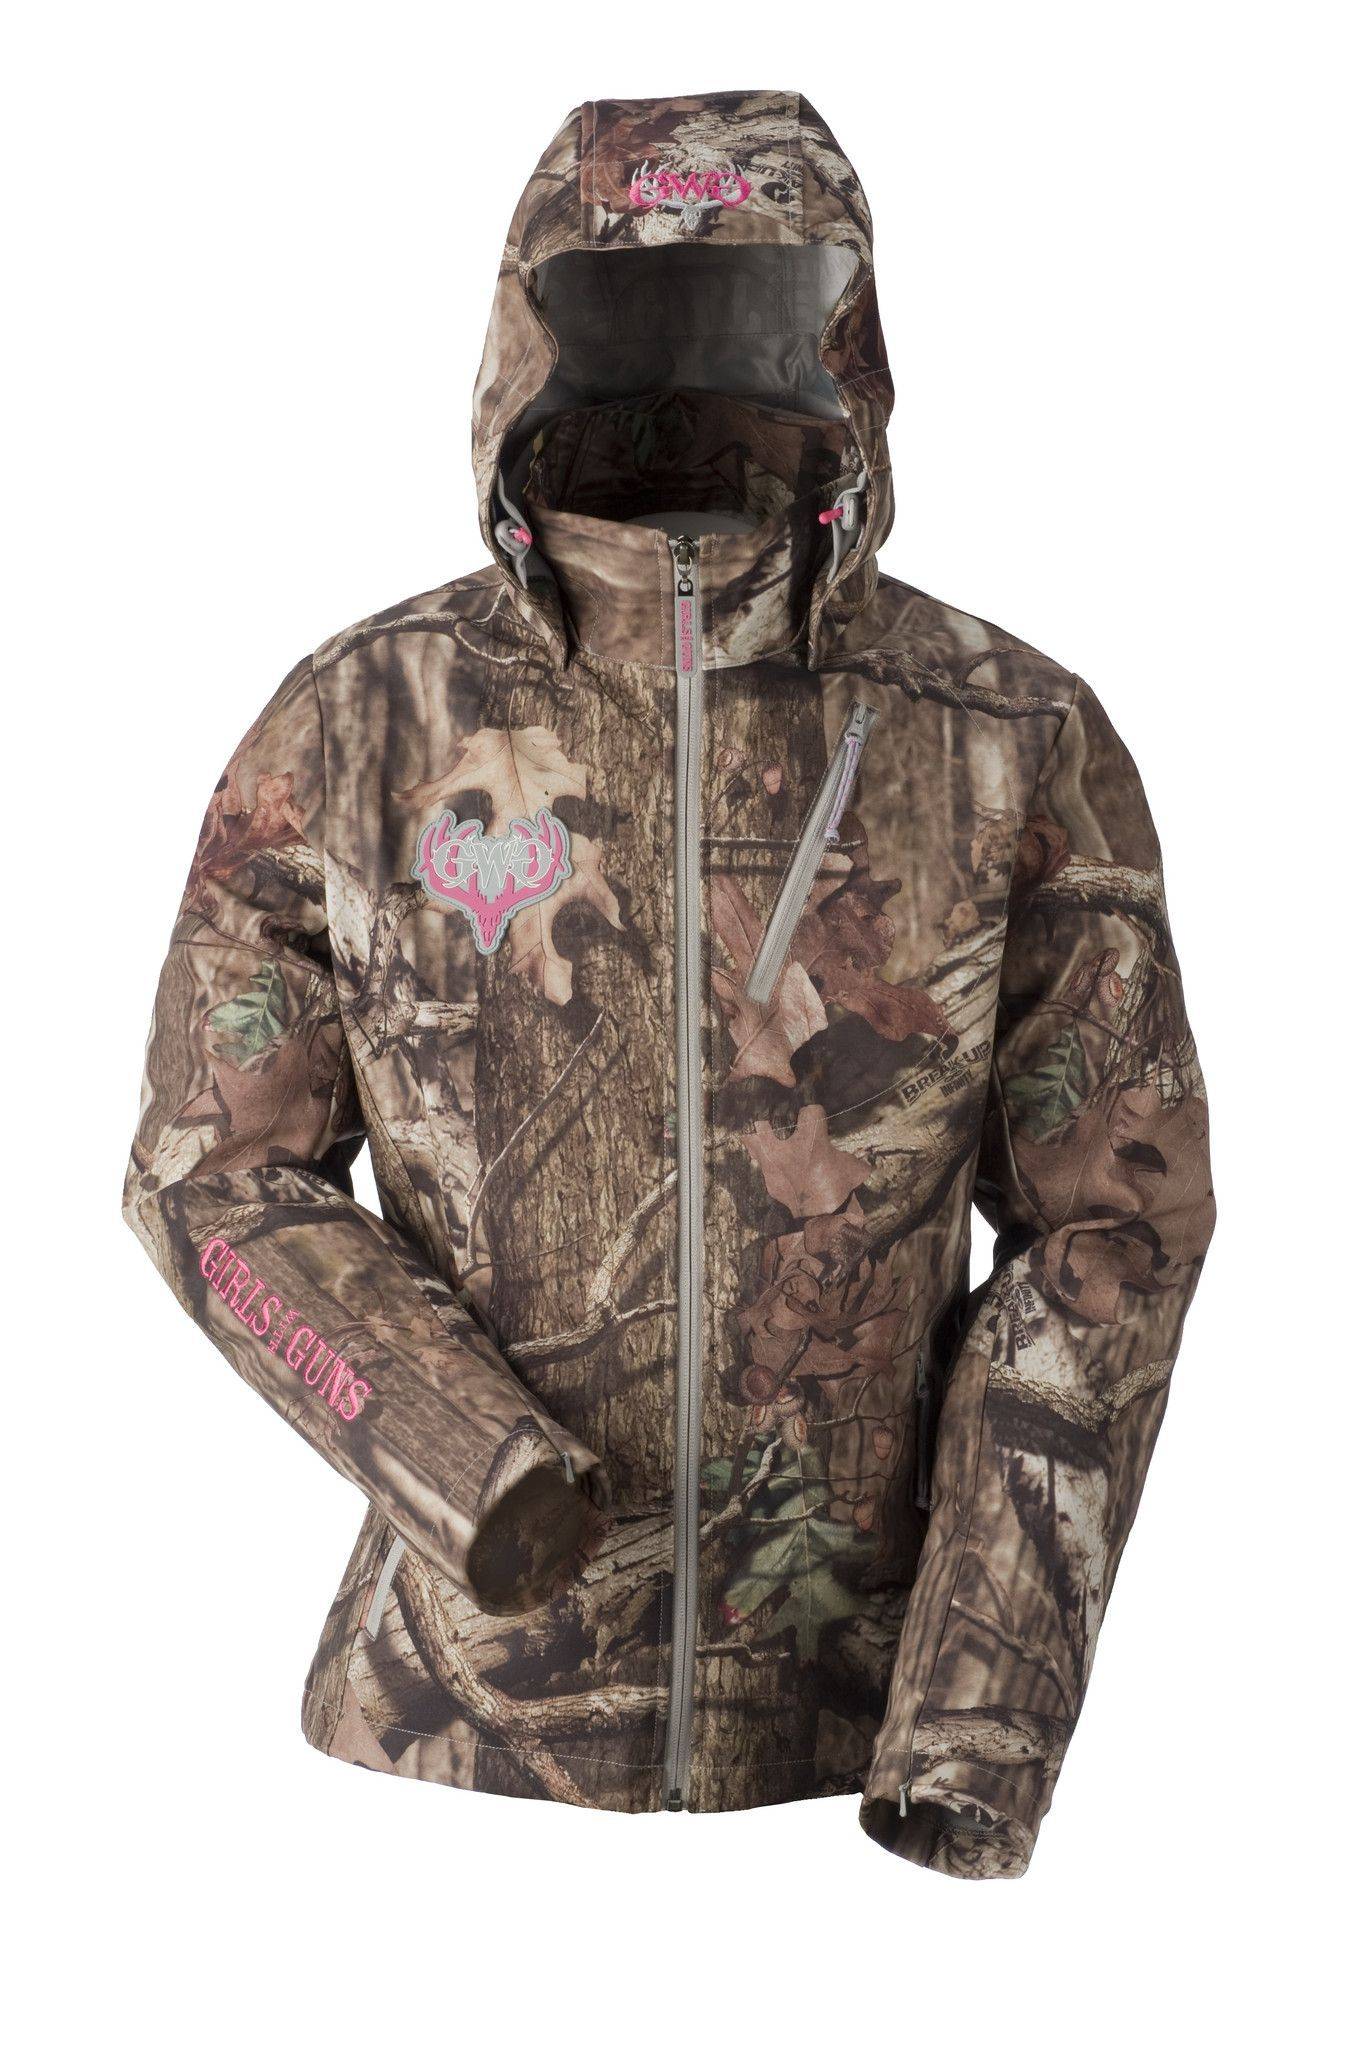 f7a9f3ee8c1eb GWG Midweight Jacket - Mossy Oak Break Up Infinity - Wind resistant  soft-shell with DWR treatment - Soft, micro tricot lining with embossed  logo - Removable ...